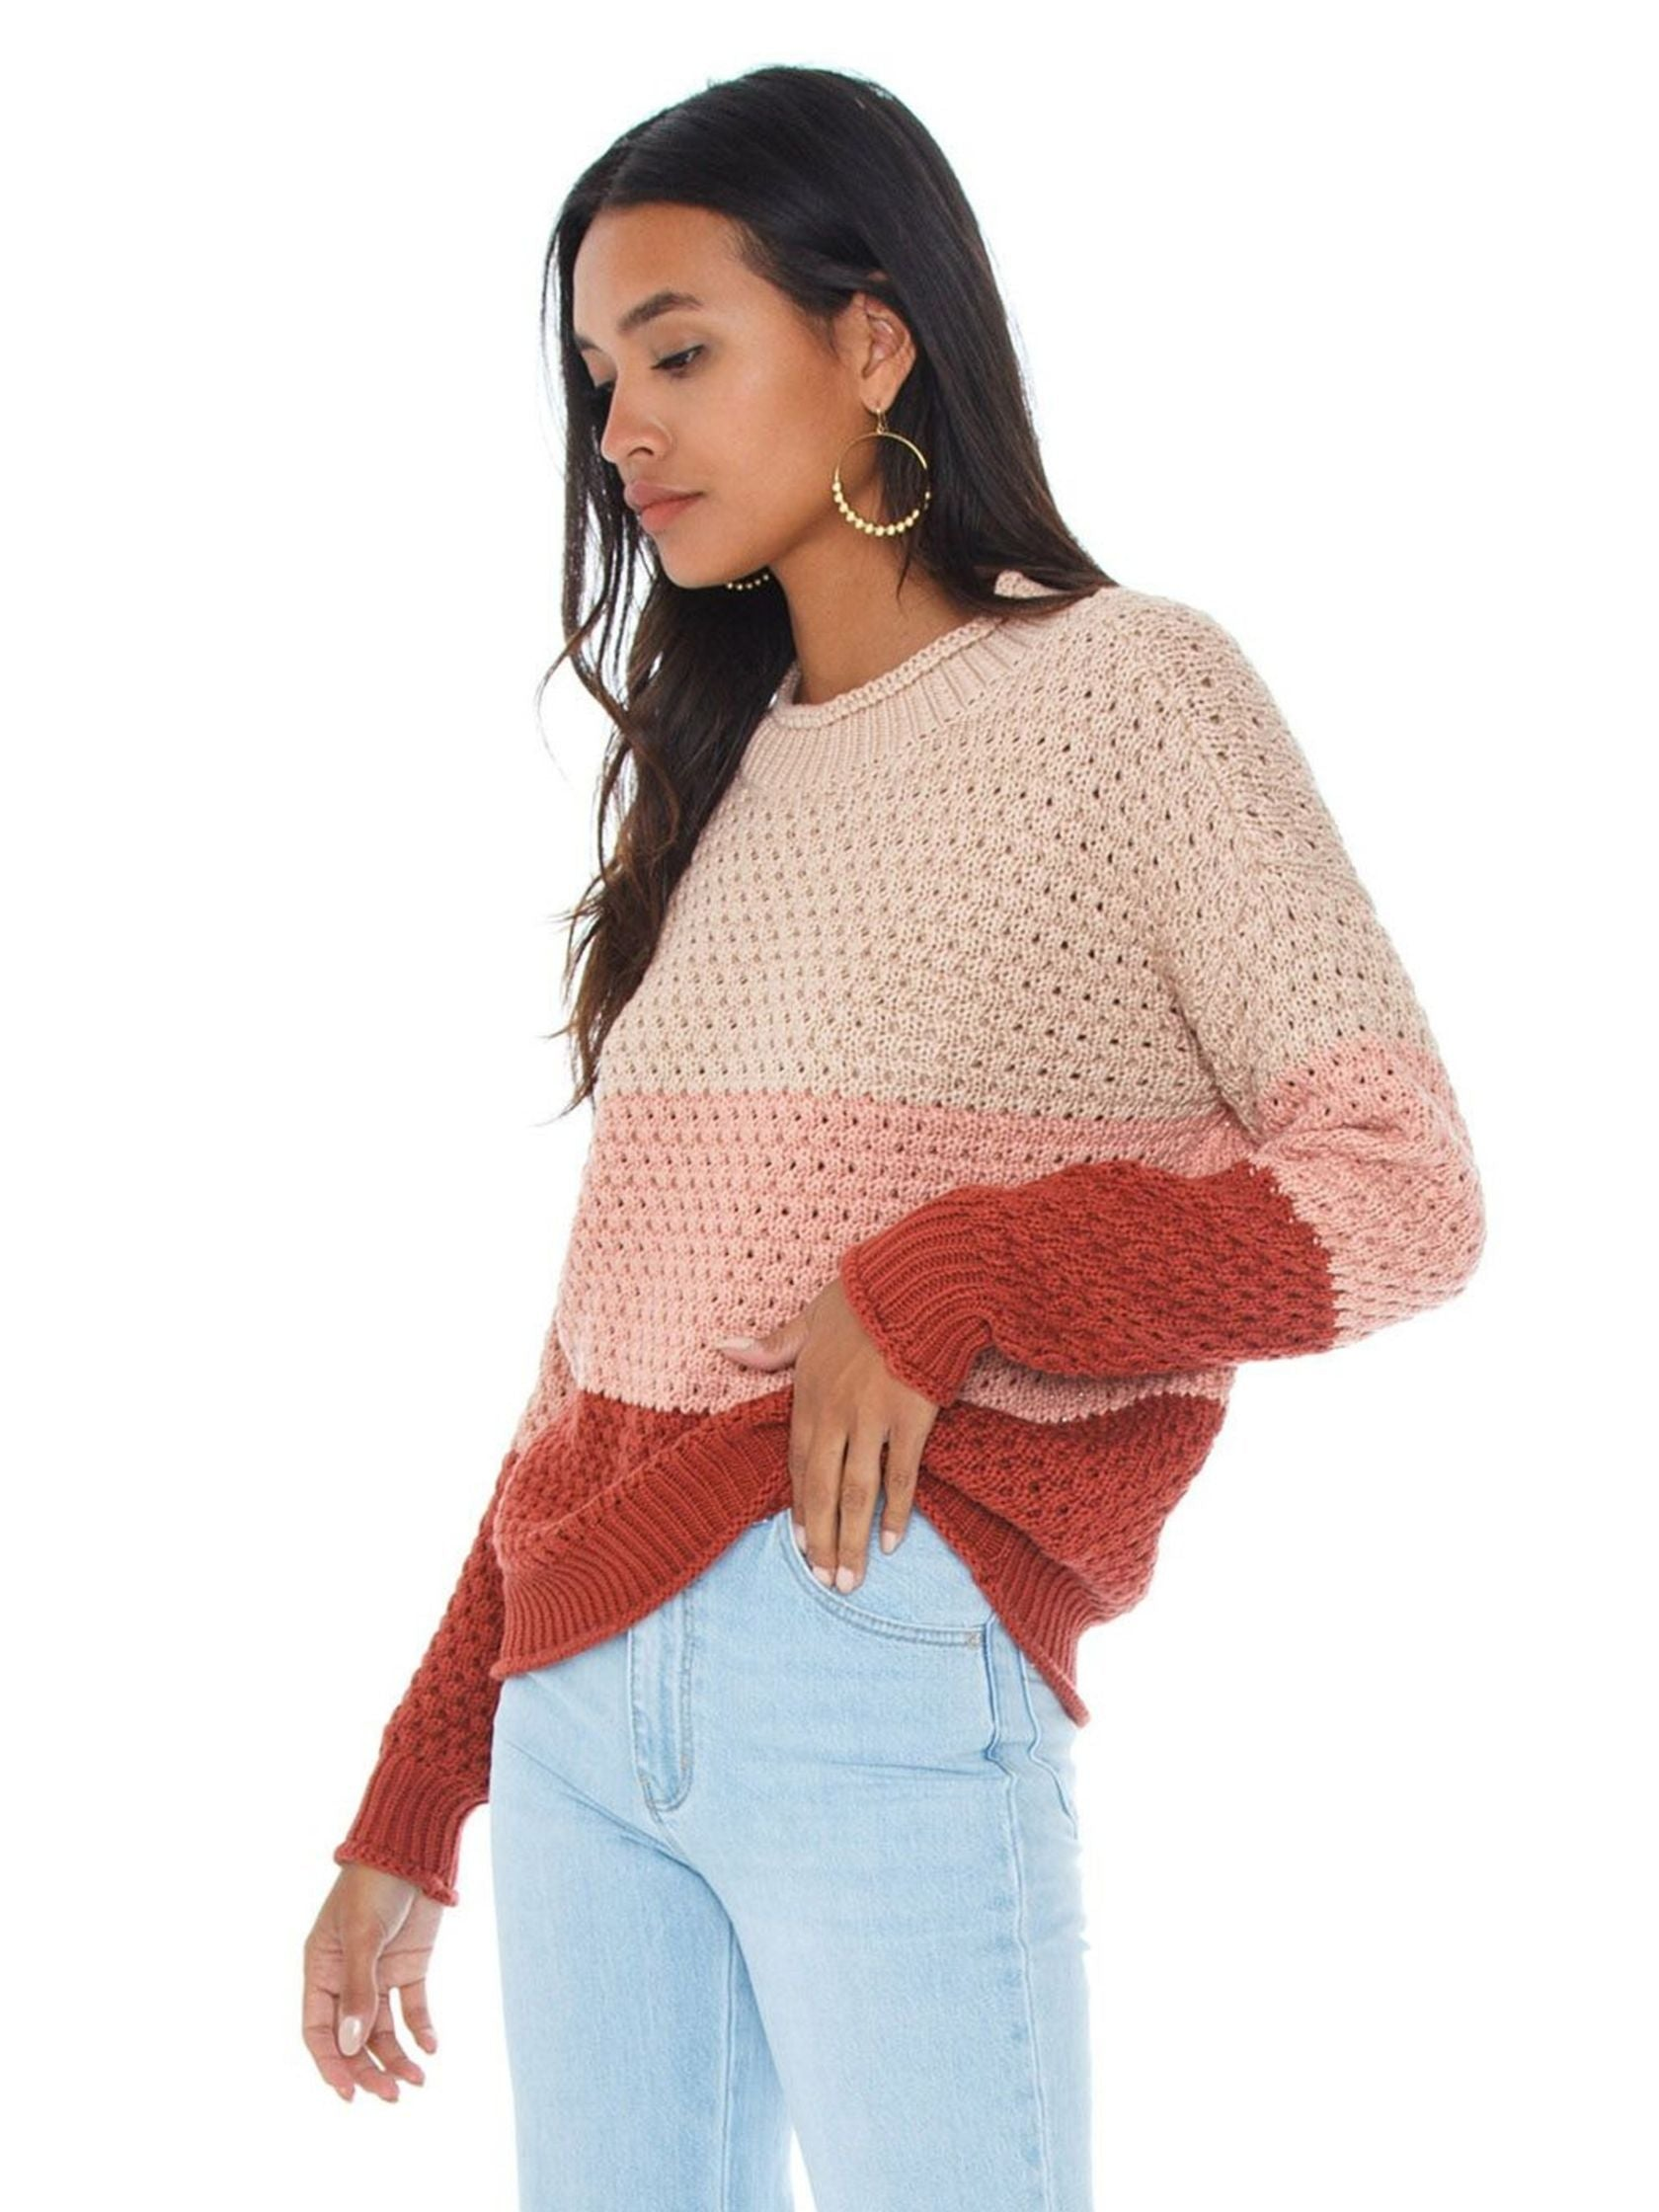 Women wearing a sweater rental from Knot Sisters called Zella Sweater